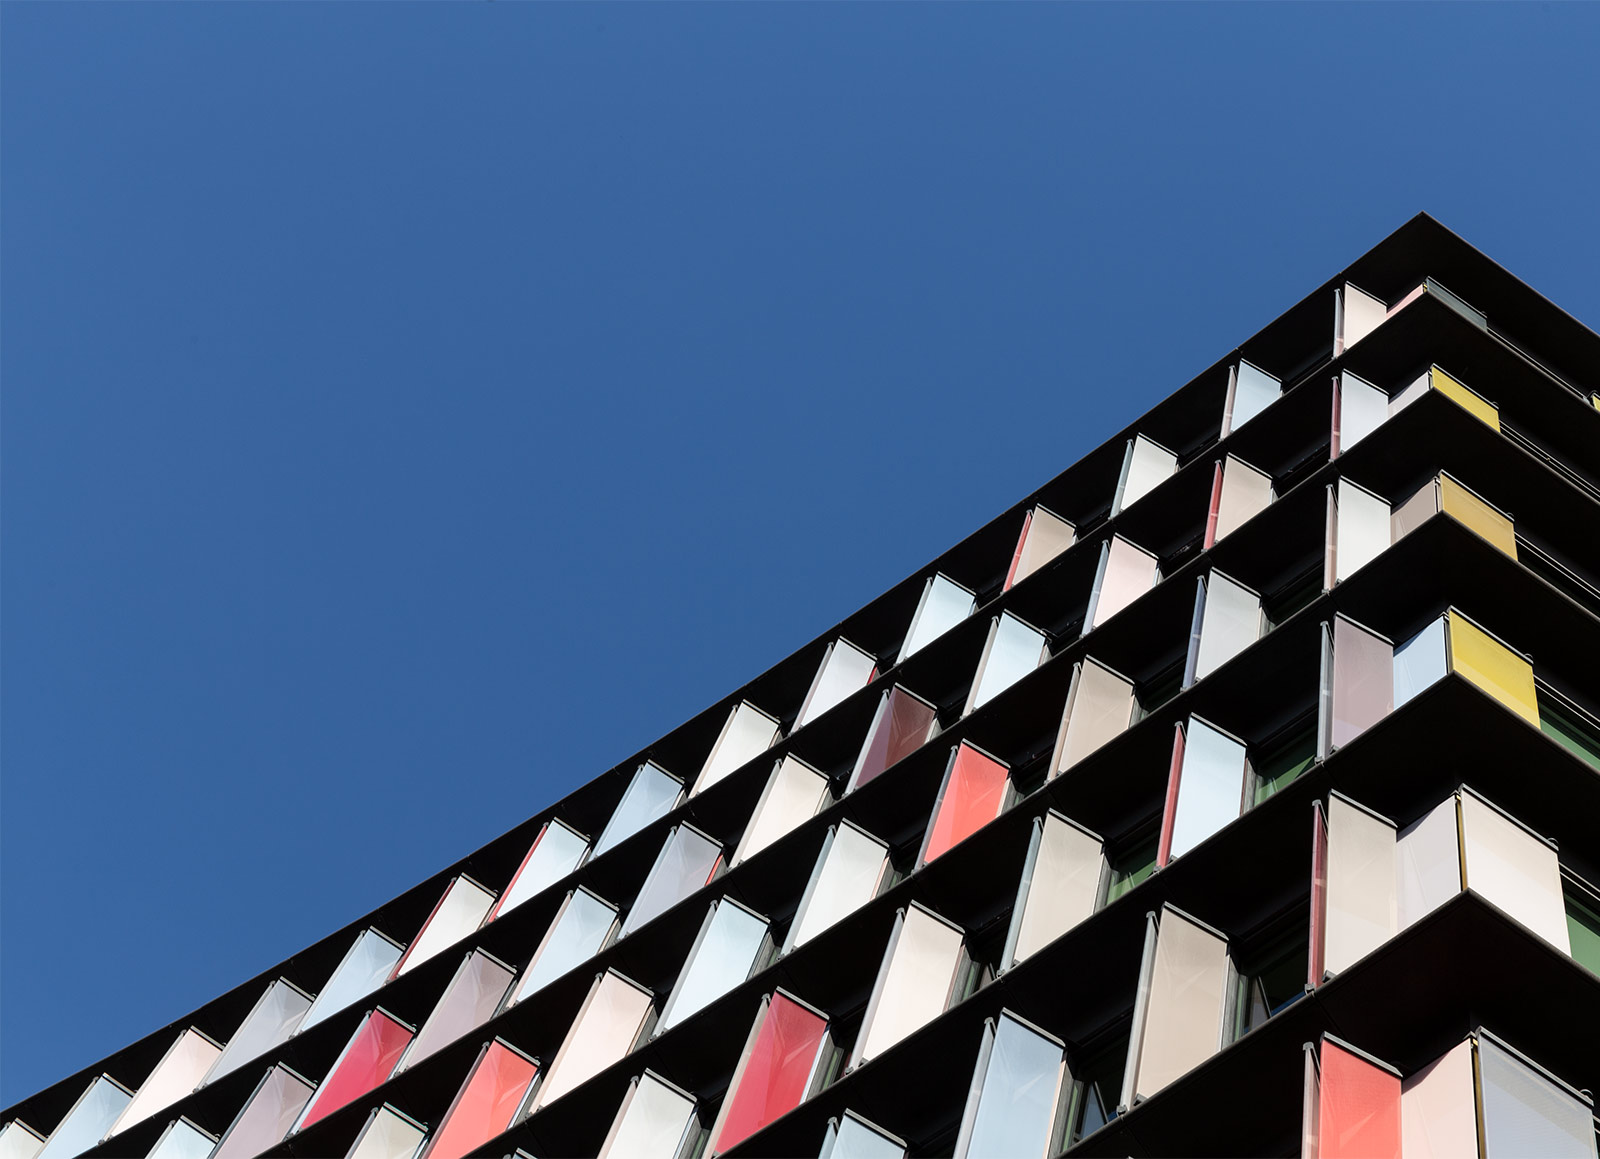 Commercial property image of a colourful glass building